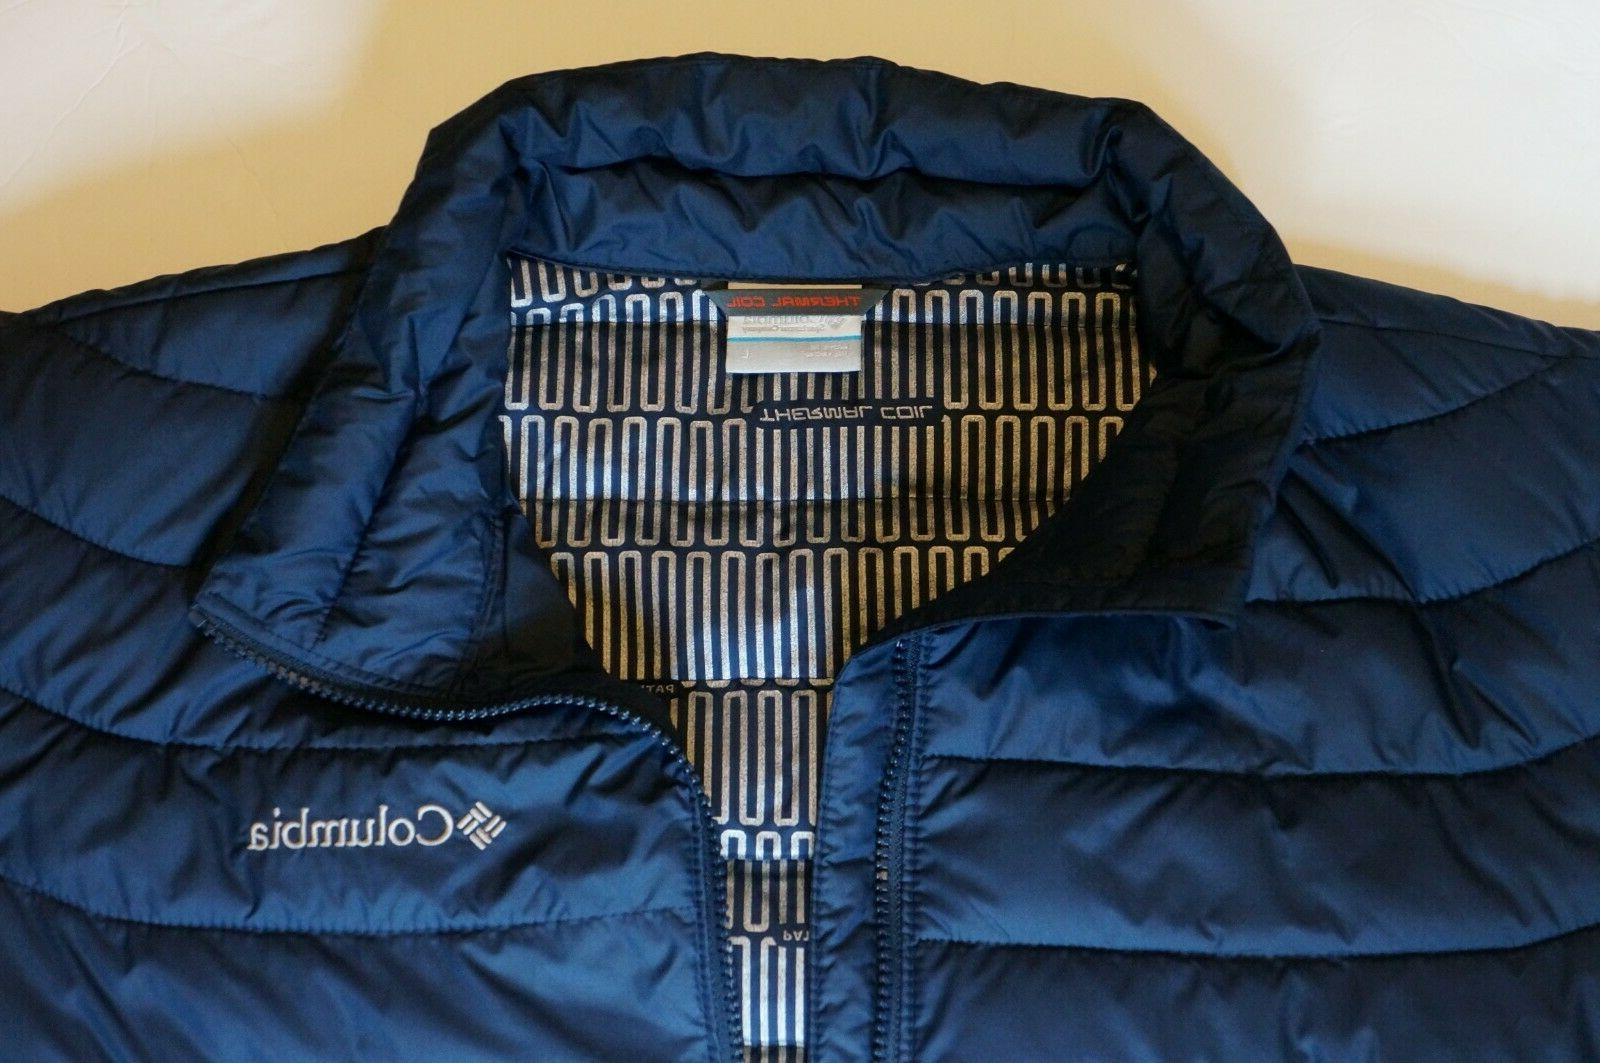 NWT OYANTA TRAIL JACKET INSULATED THERMA-COIL COAT SIZE